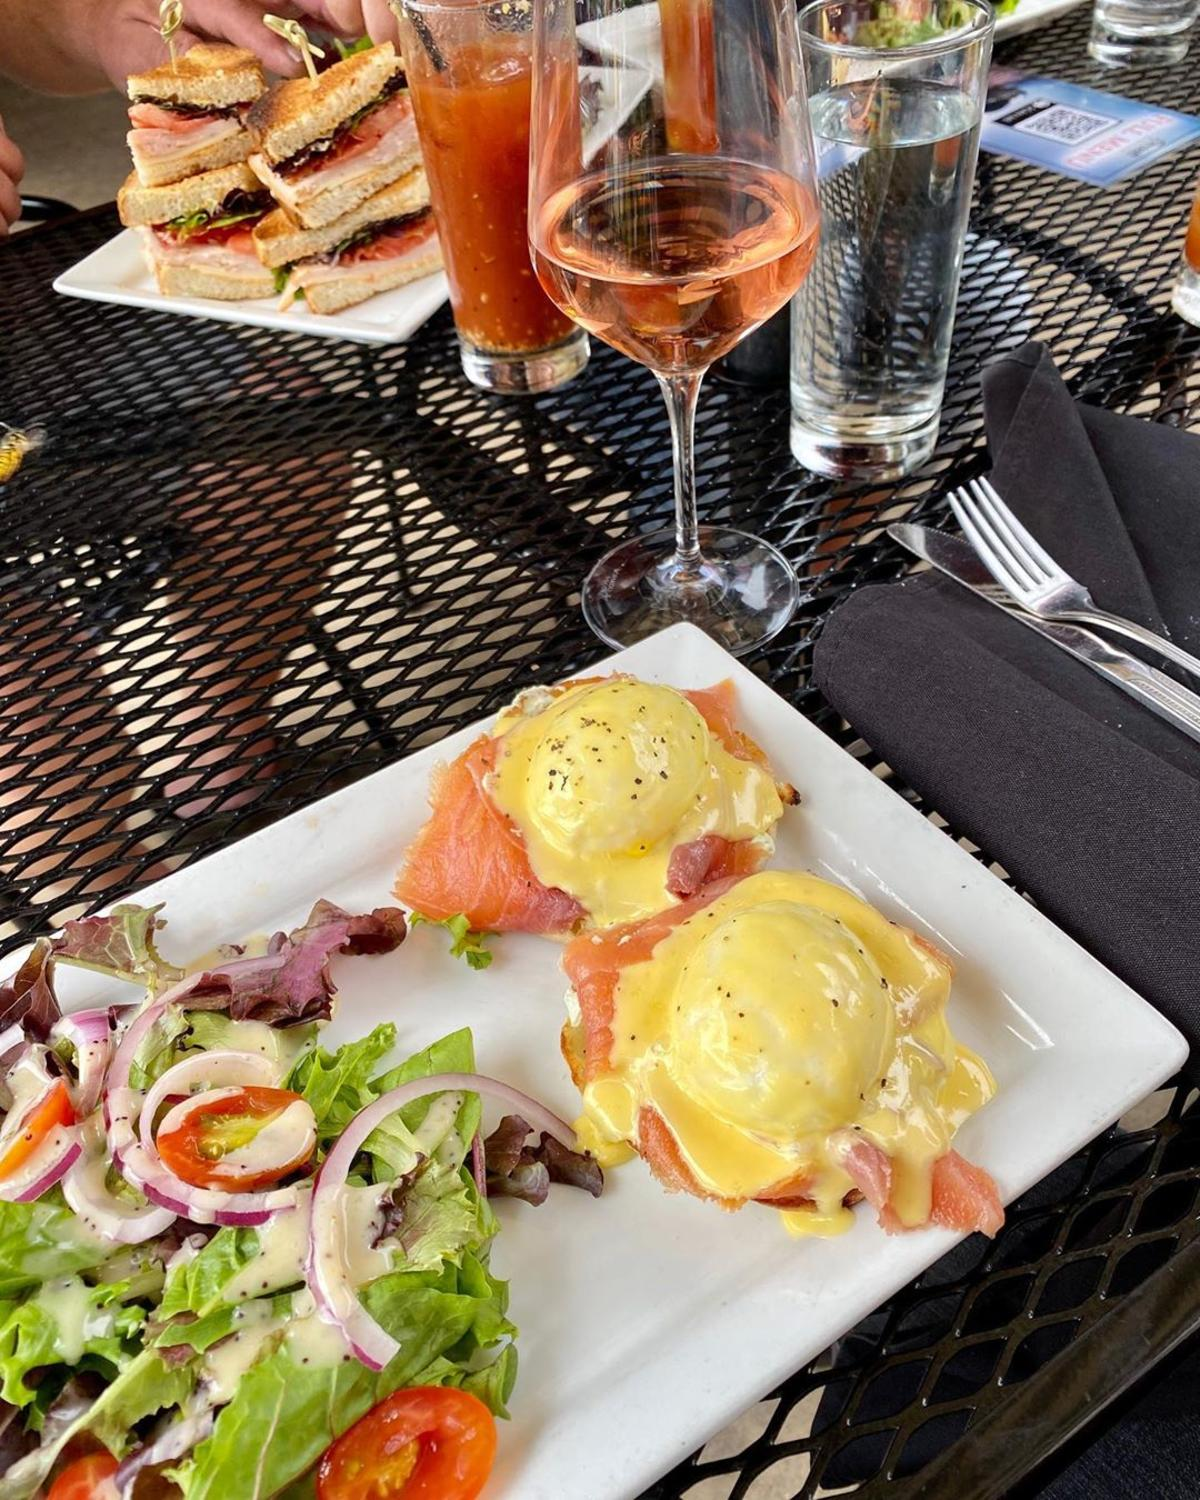 Brunch & brunch cocktails on the outdoor patio of Prost! Wine Bar & Charcuterie in Frankenmuth